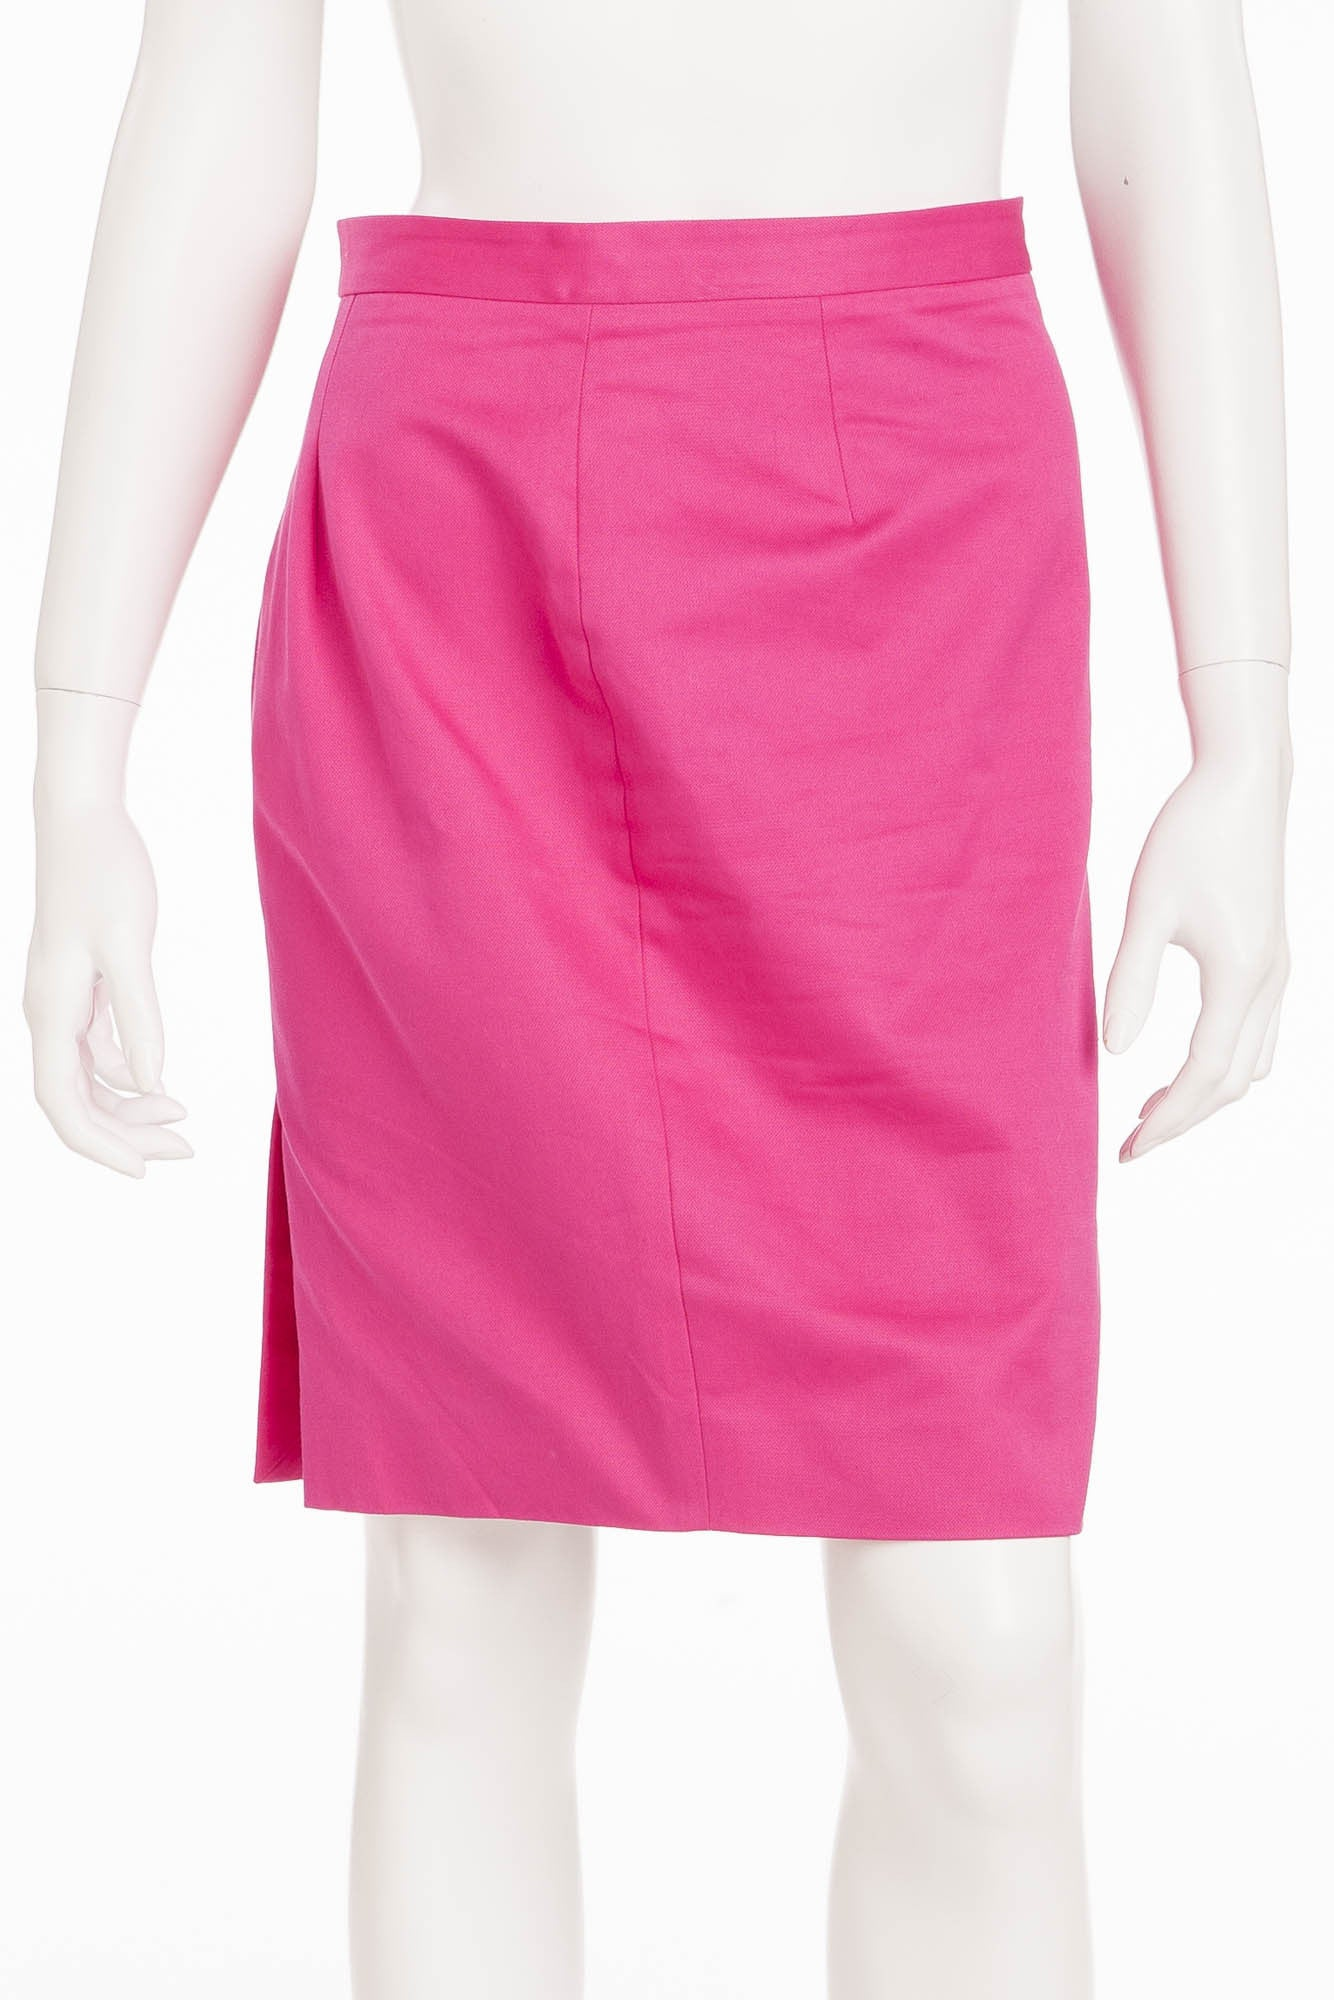 79f4db988 Dsquared2 - Hot Pink Pencil Skirt - IT 42 – LUXHAVE